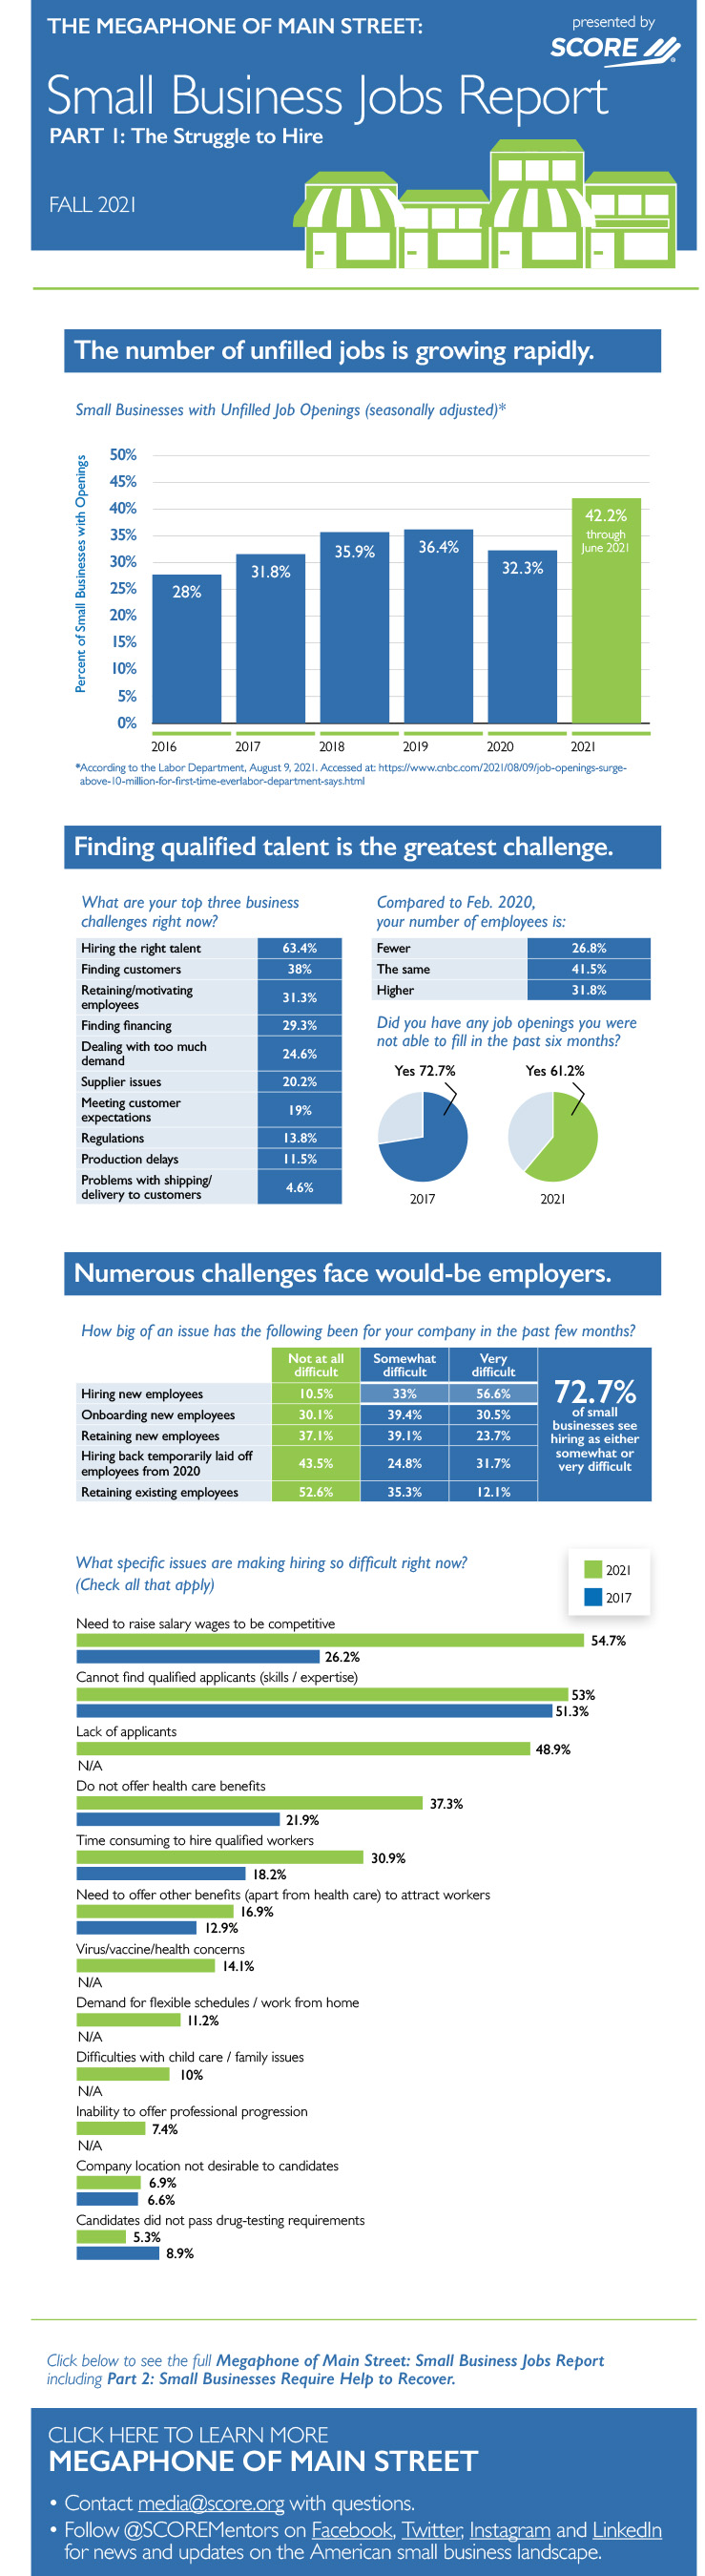 Small Businesses Struggle to Hire and Retain Employees as...